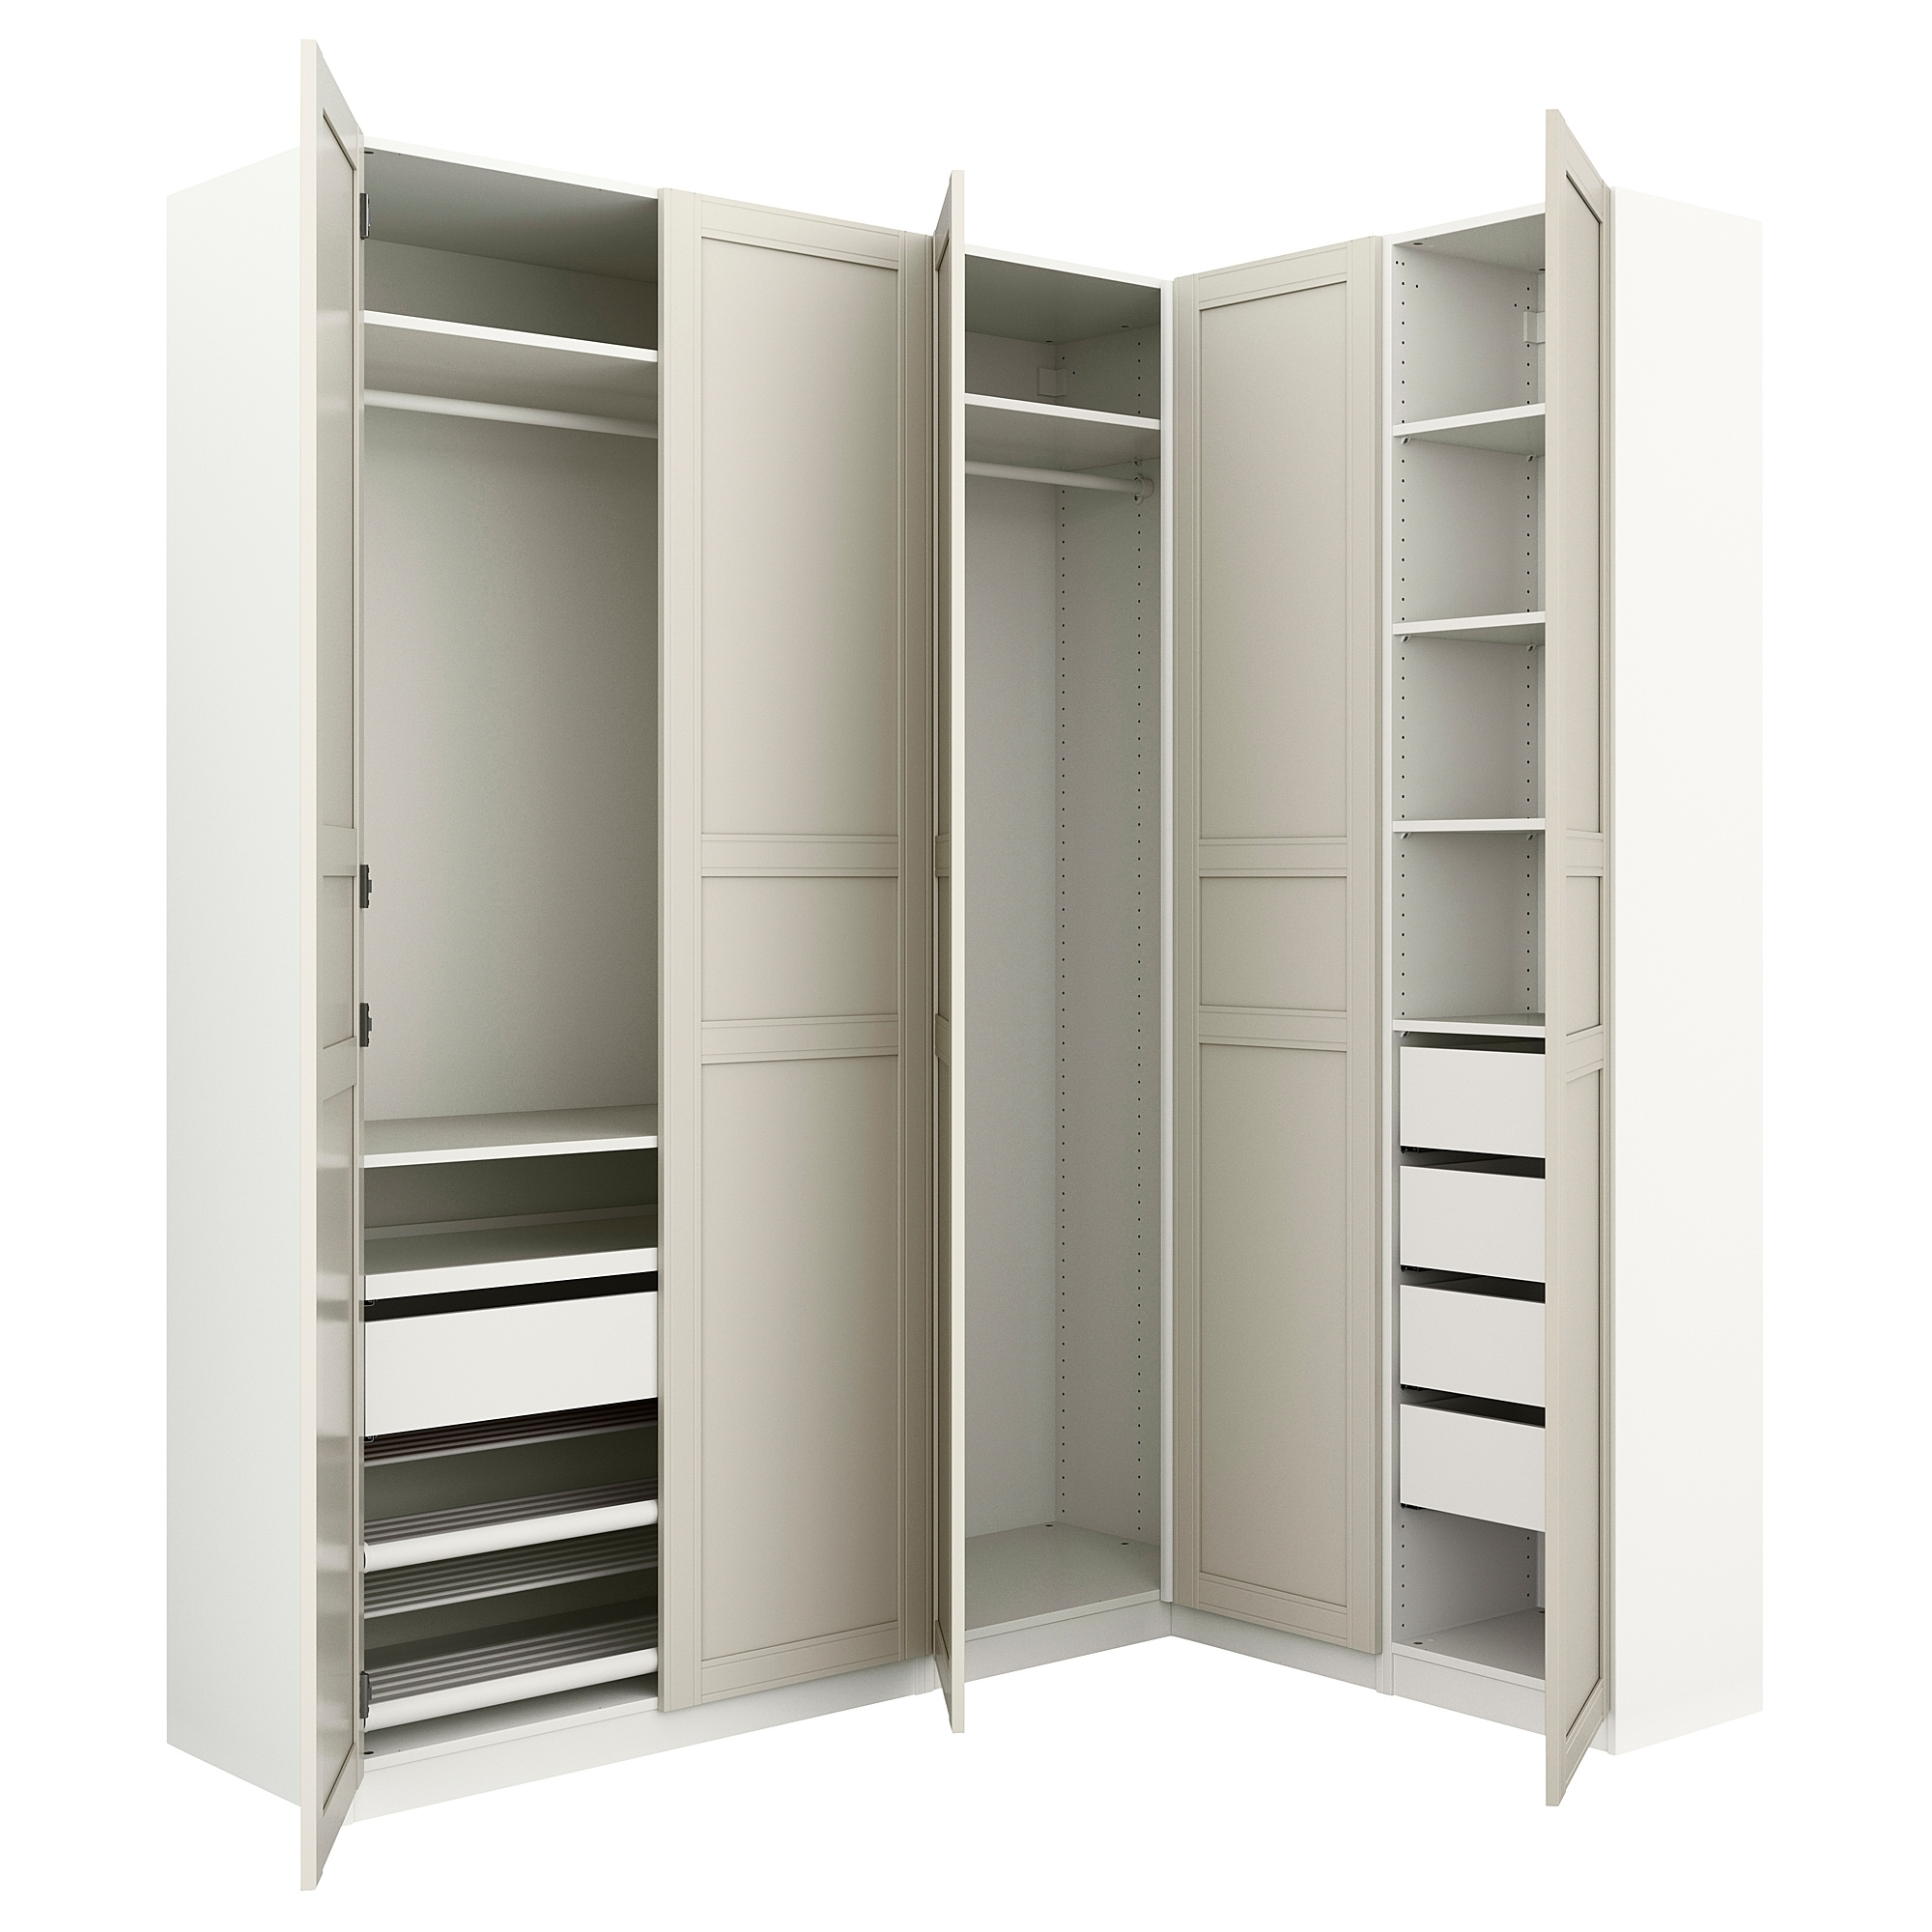 White Corner Wardrobes Units Regarding 2017 Pax Corner Wardrobe White/flisberget Light Beige 160/188X236 Cm – Ikea (View 15 of 15)